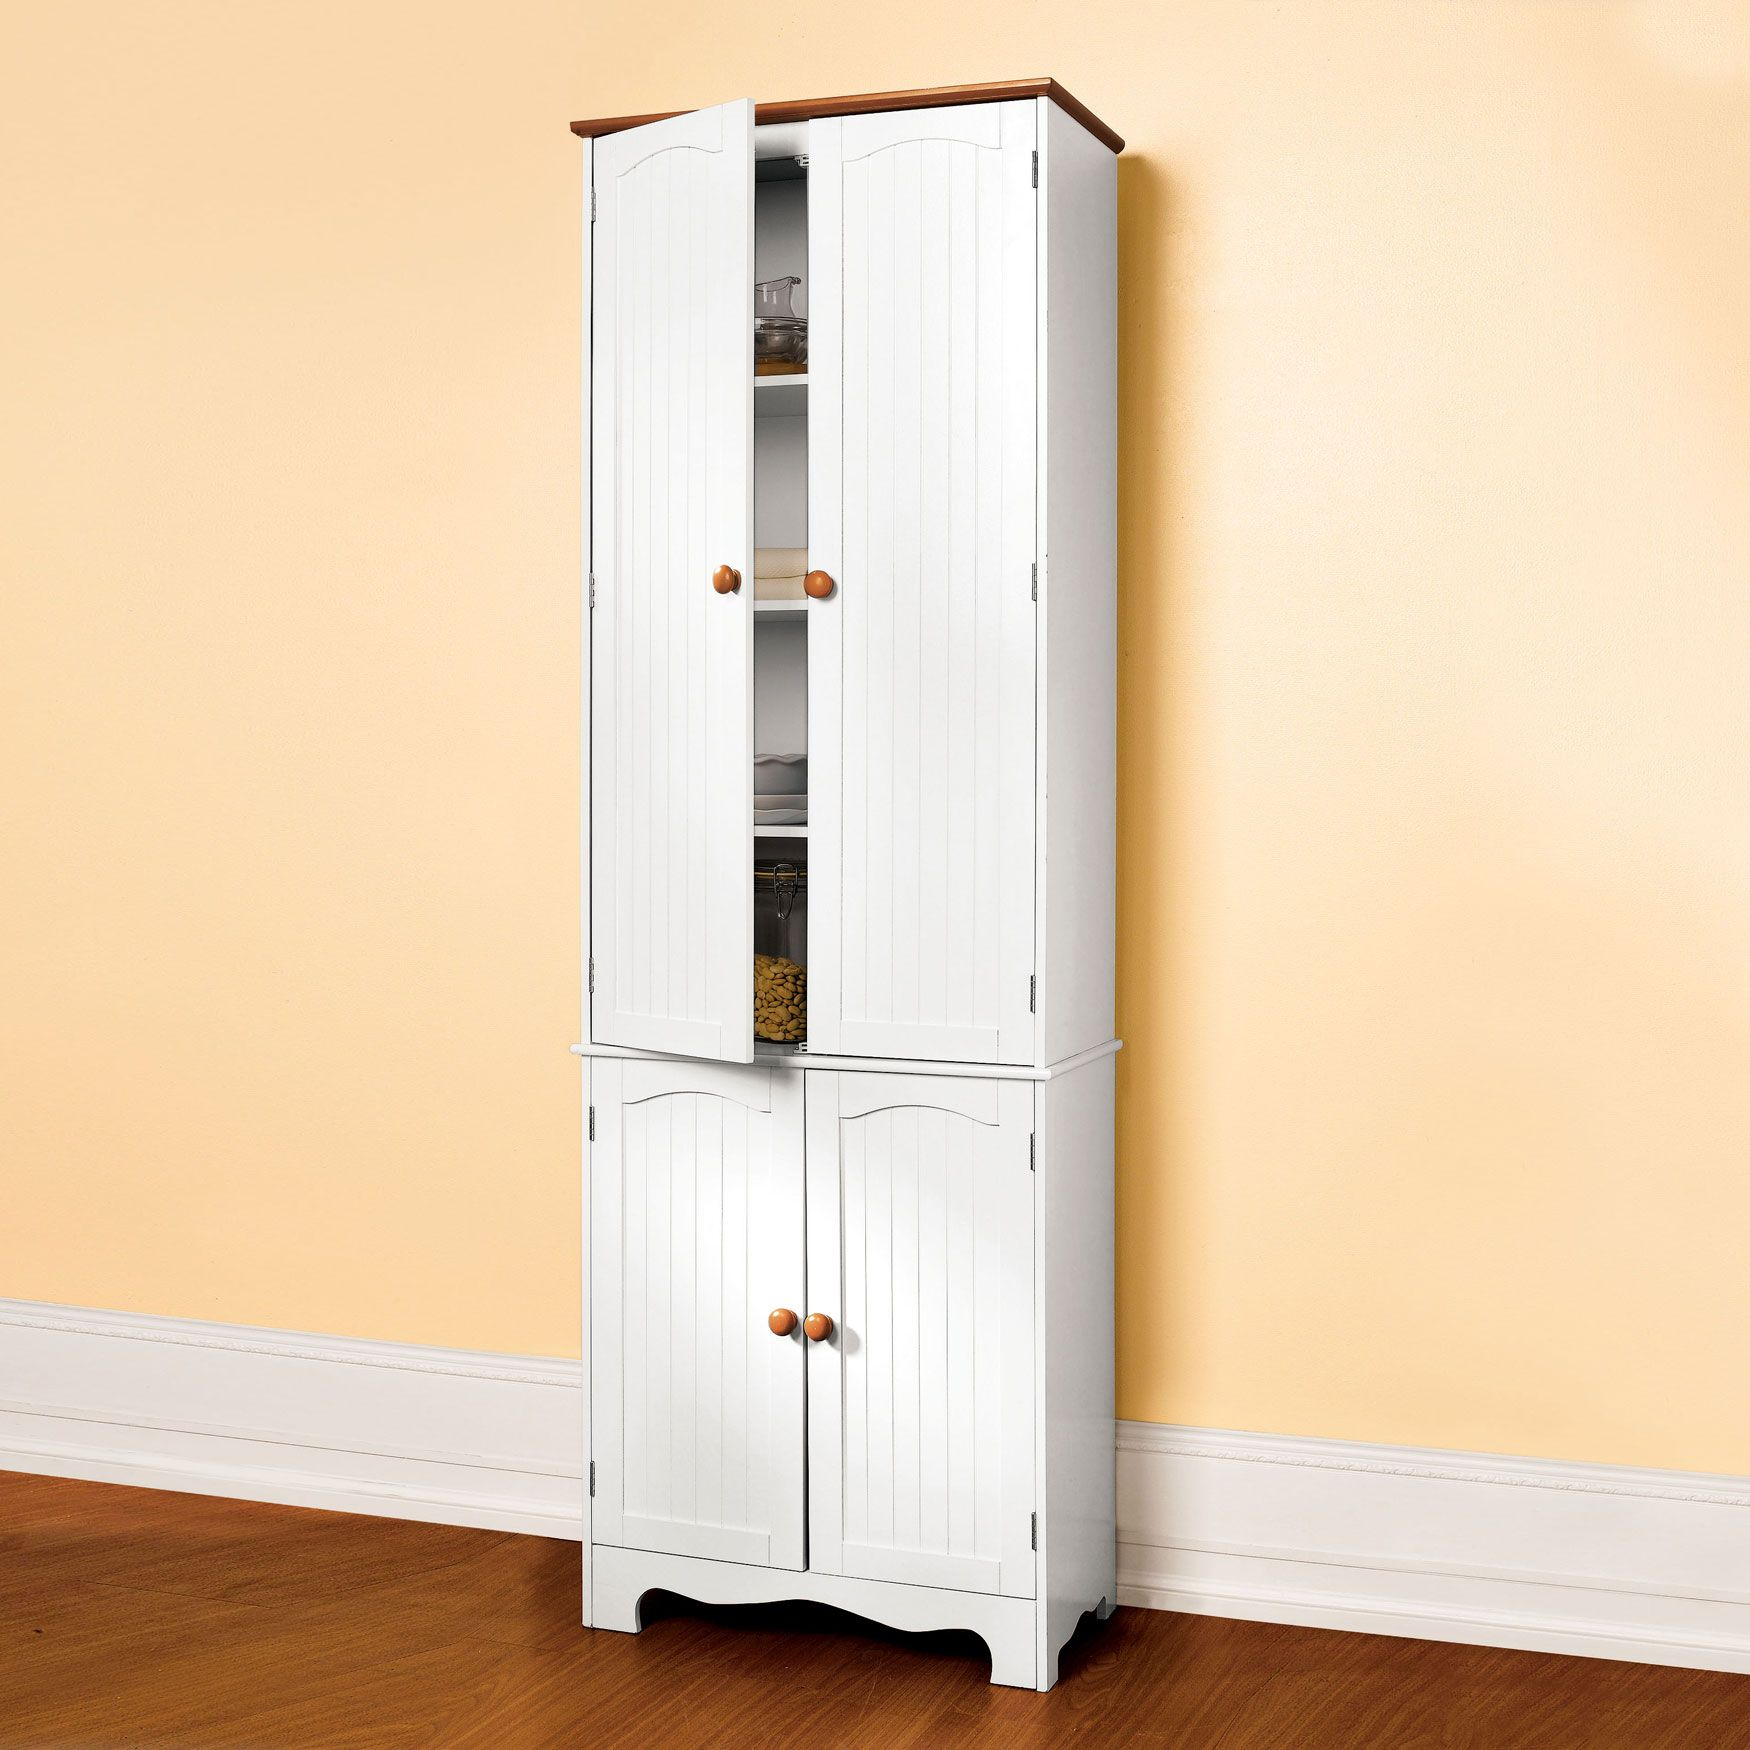 Country Kitchen Tall Two Part Four Door Pantry Pantry Cabinet Kitchen Cabinet Storage Tall Kitchen Storage